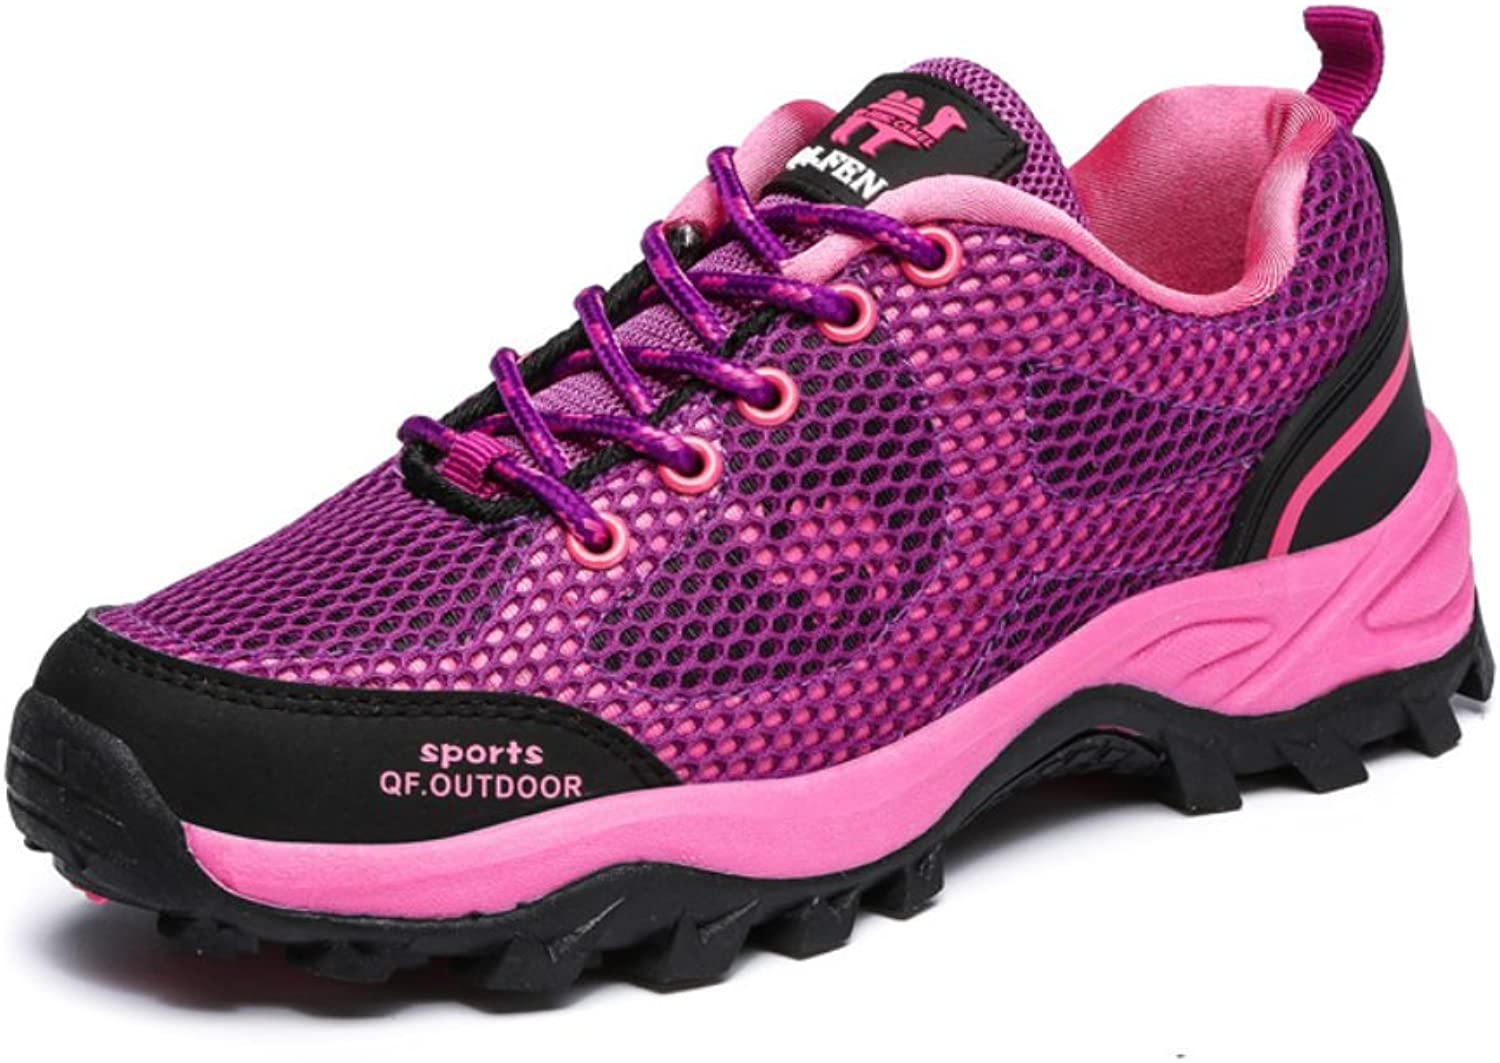 H&D Qifeng Womens Ventilated Outdoor Walking Hiking Trail shoes with Mesh Pink